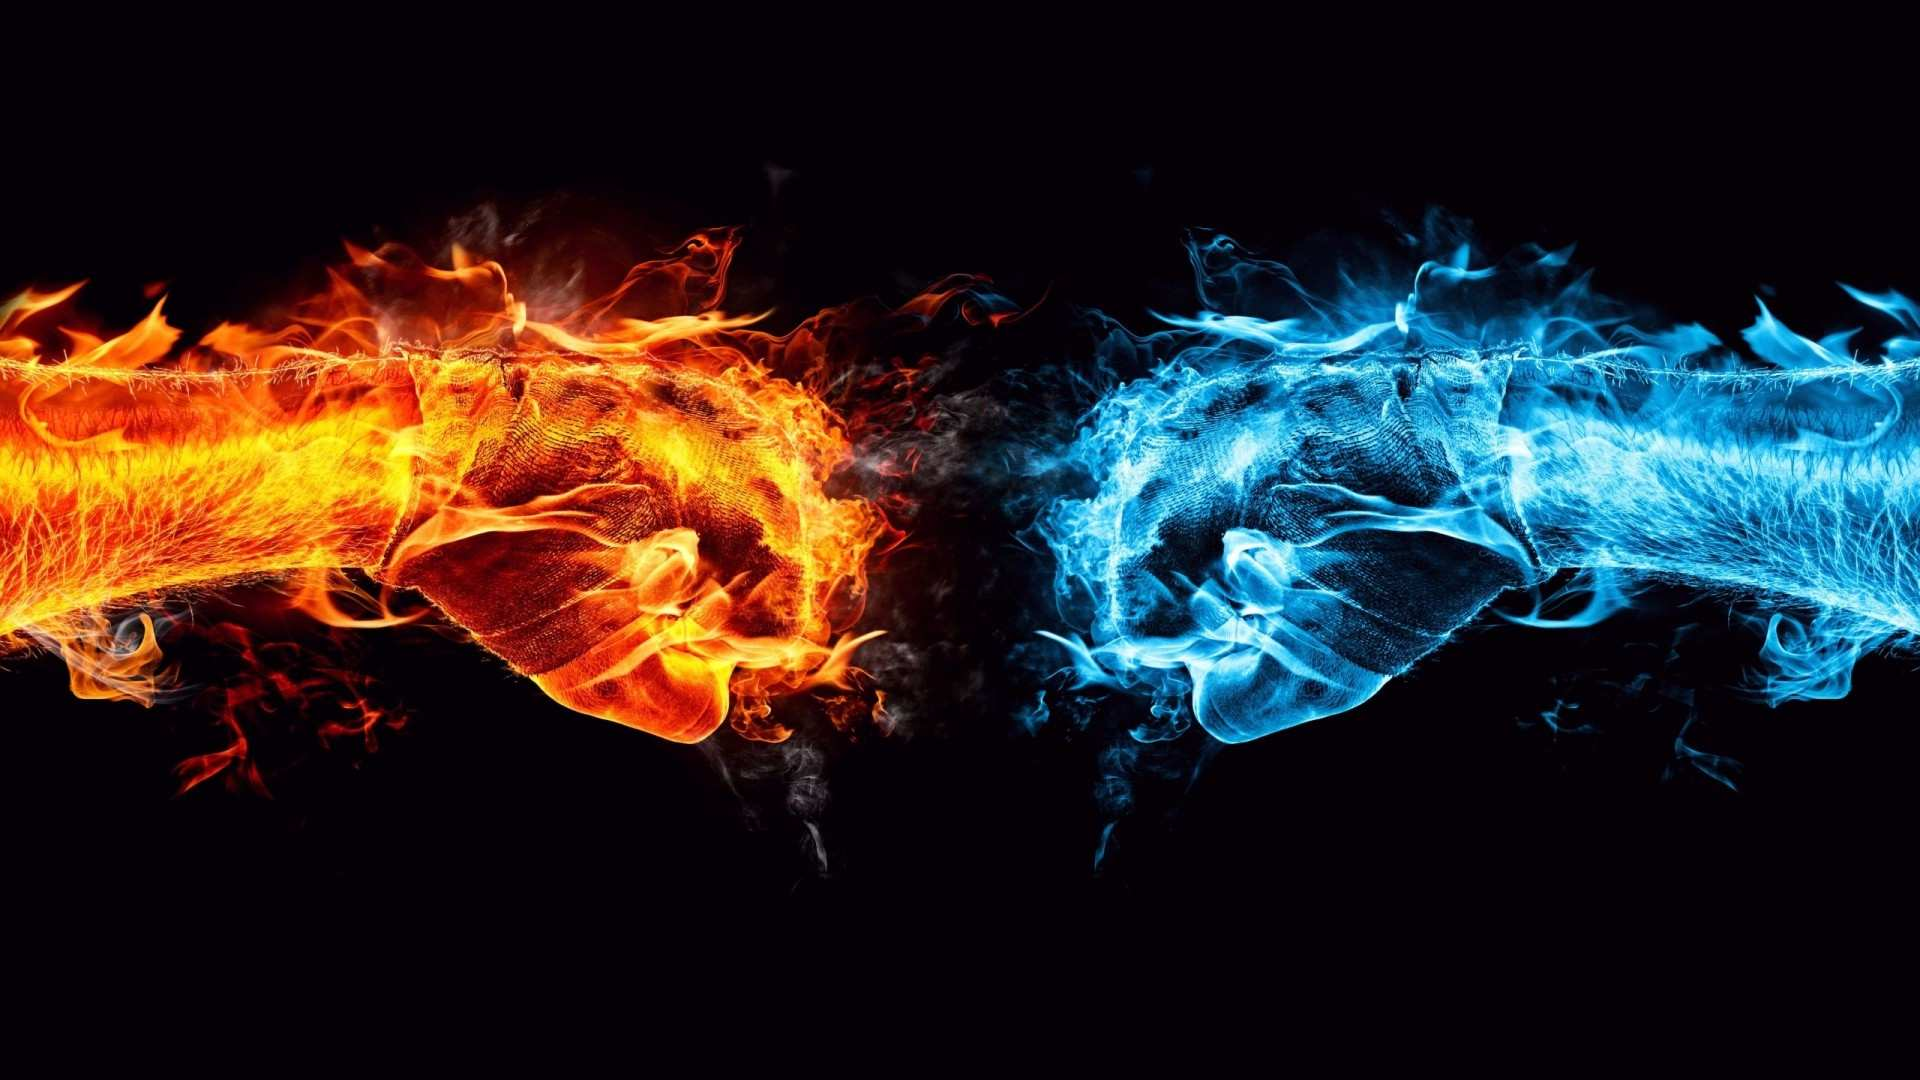 Awesome Fire Wallpaper